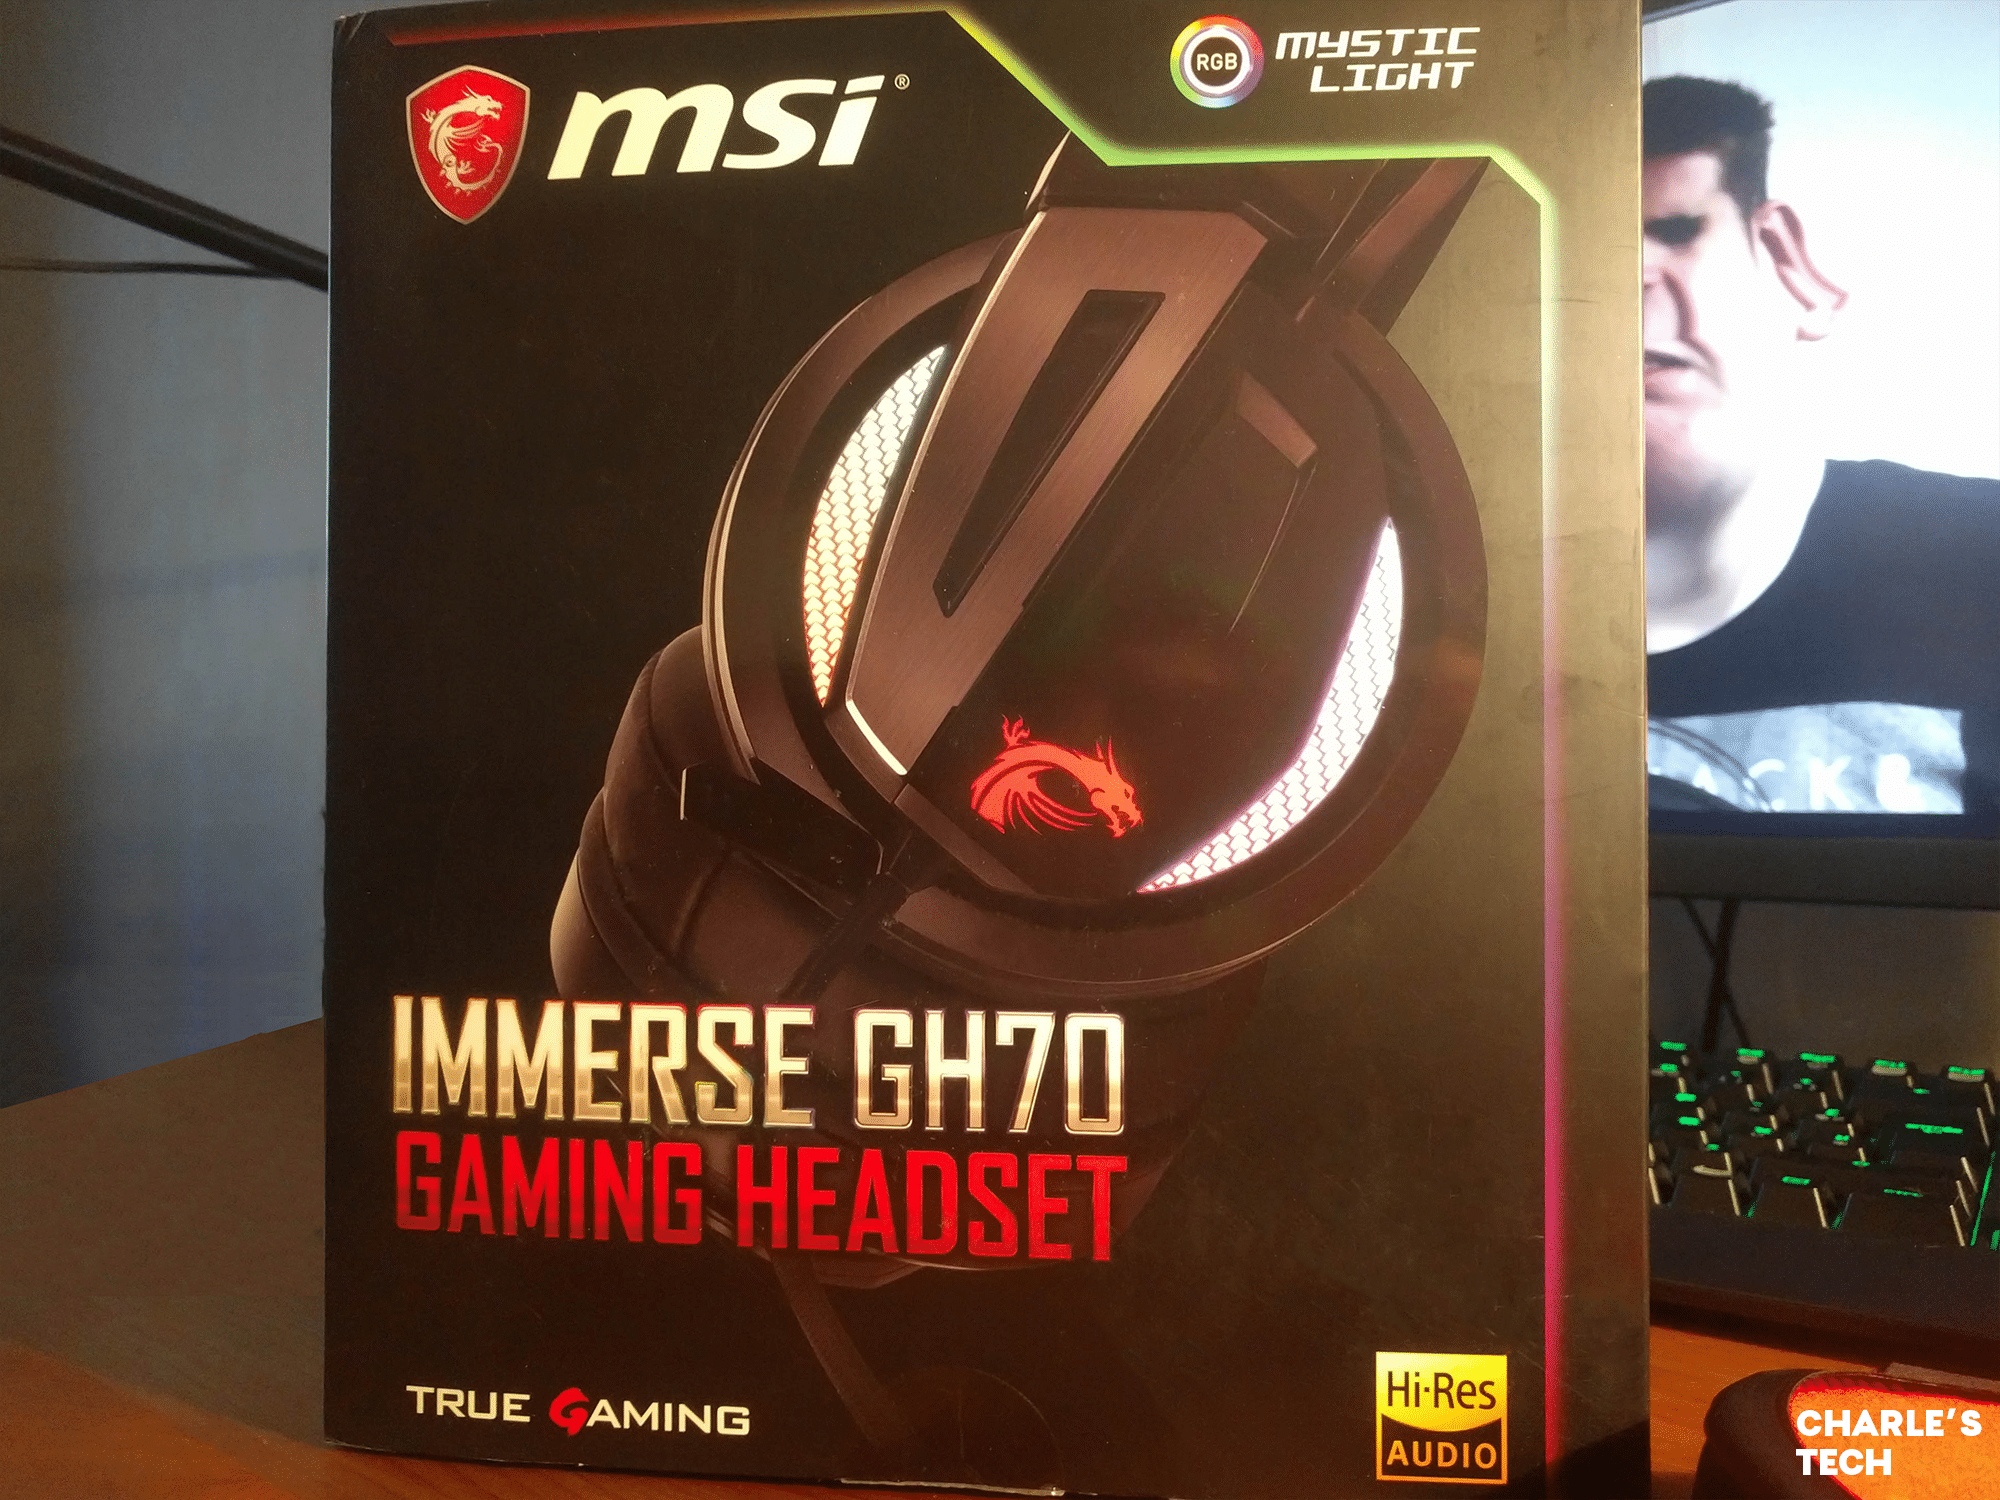 msi_immerse_gh70_7